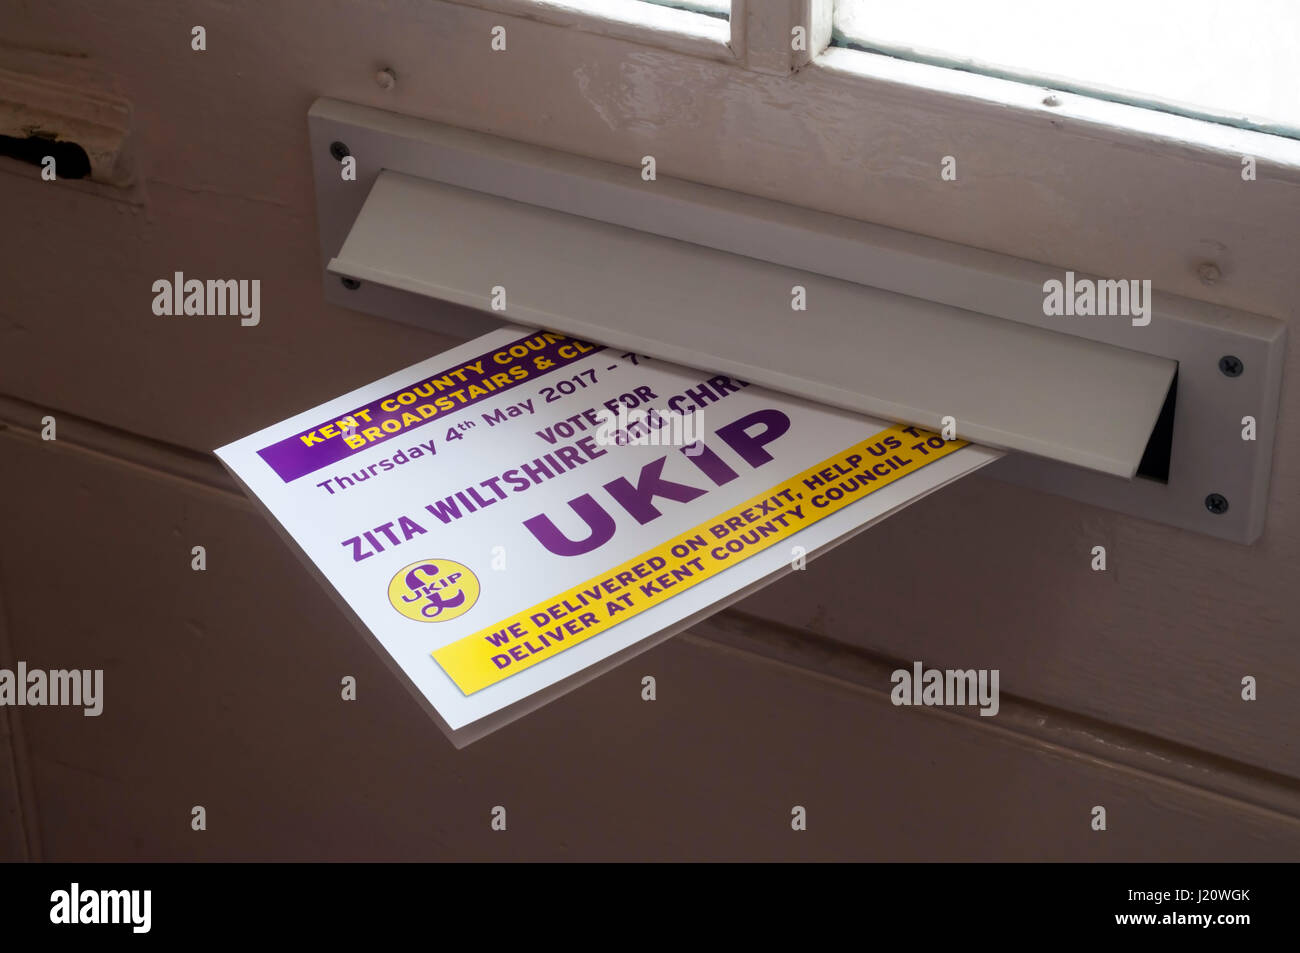 Election leaflet from right wing UKIP, UK Independence party, delivered through letterbox in Thanet. Canvassing - Stock Image